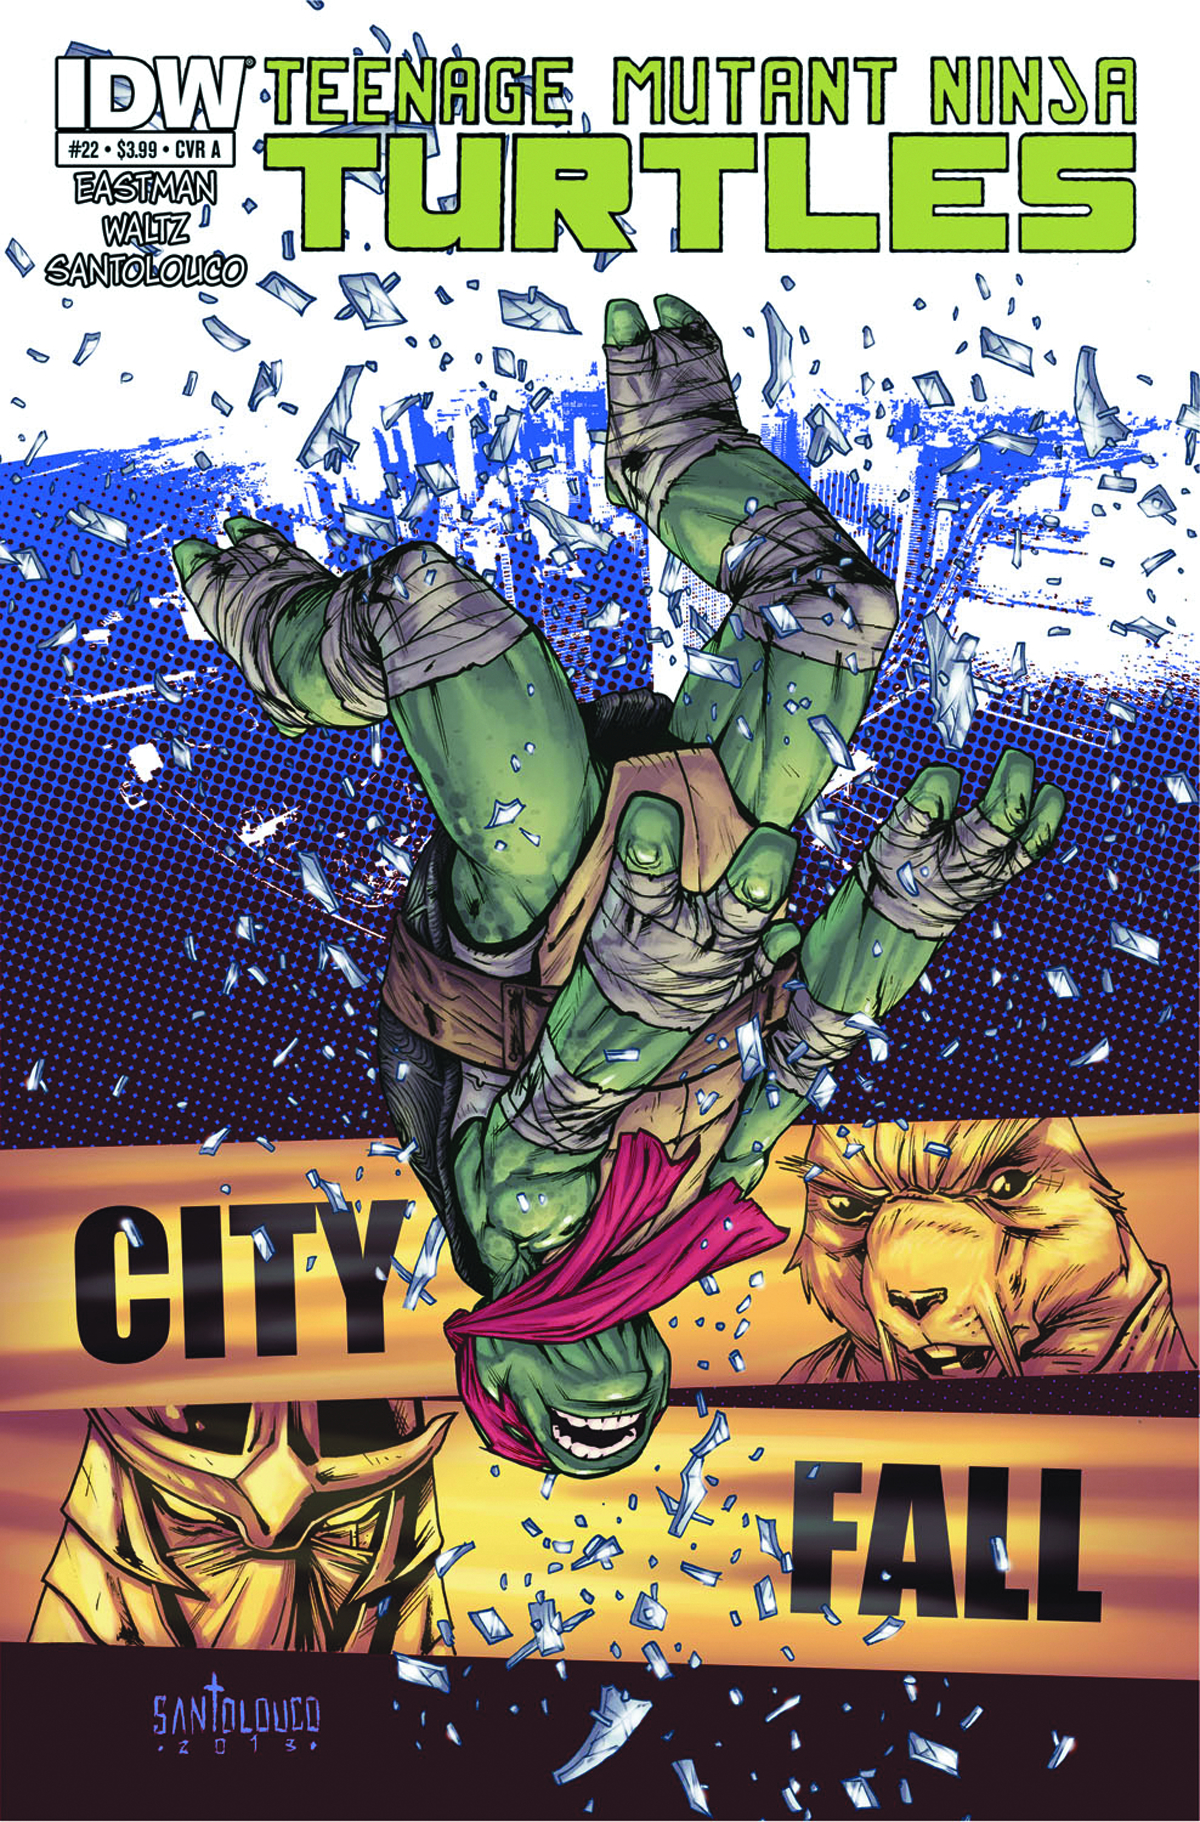 (USE APR138130) TMNT ONGOING #22